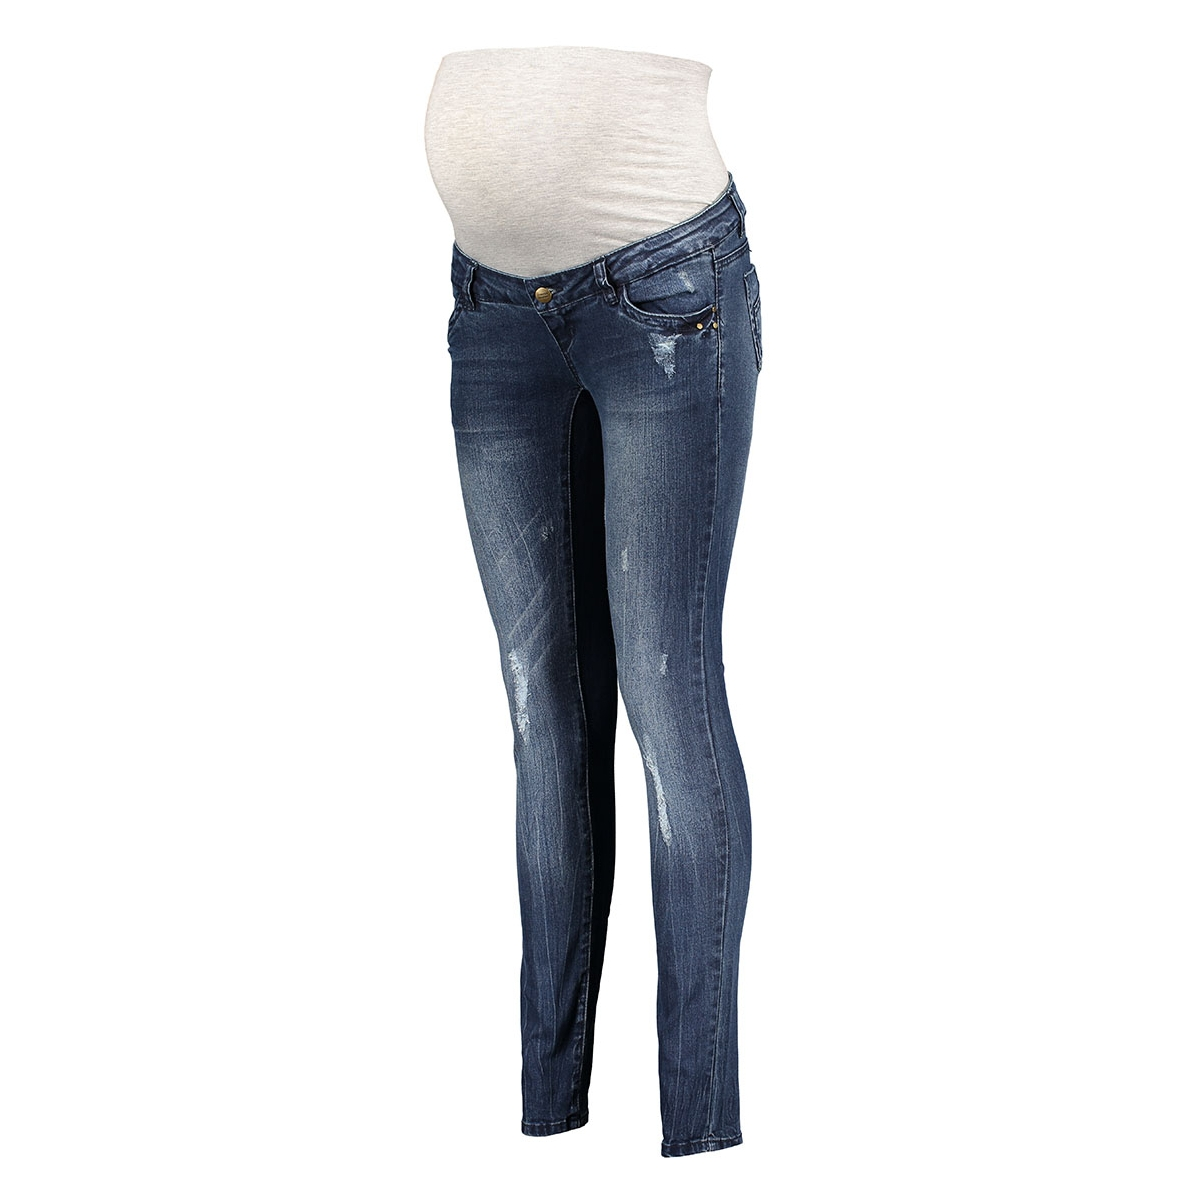 mltropez slim jeans - stars 20006508 mama-licious positie broek medium blue denim